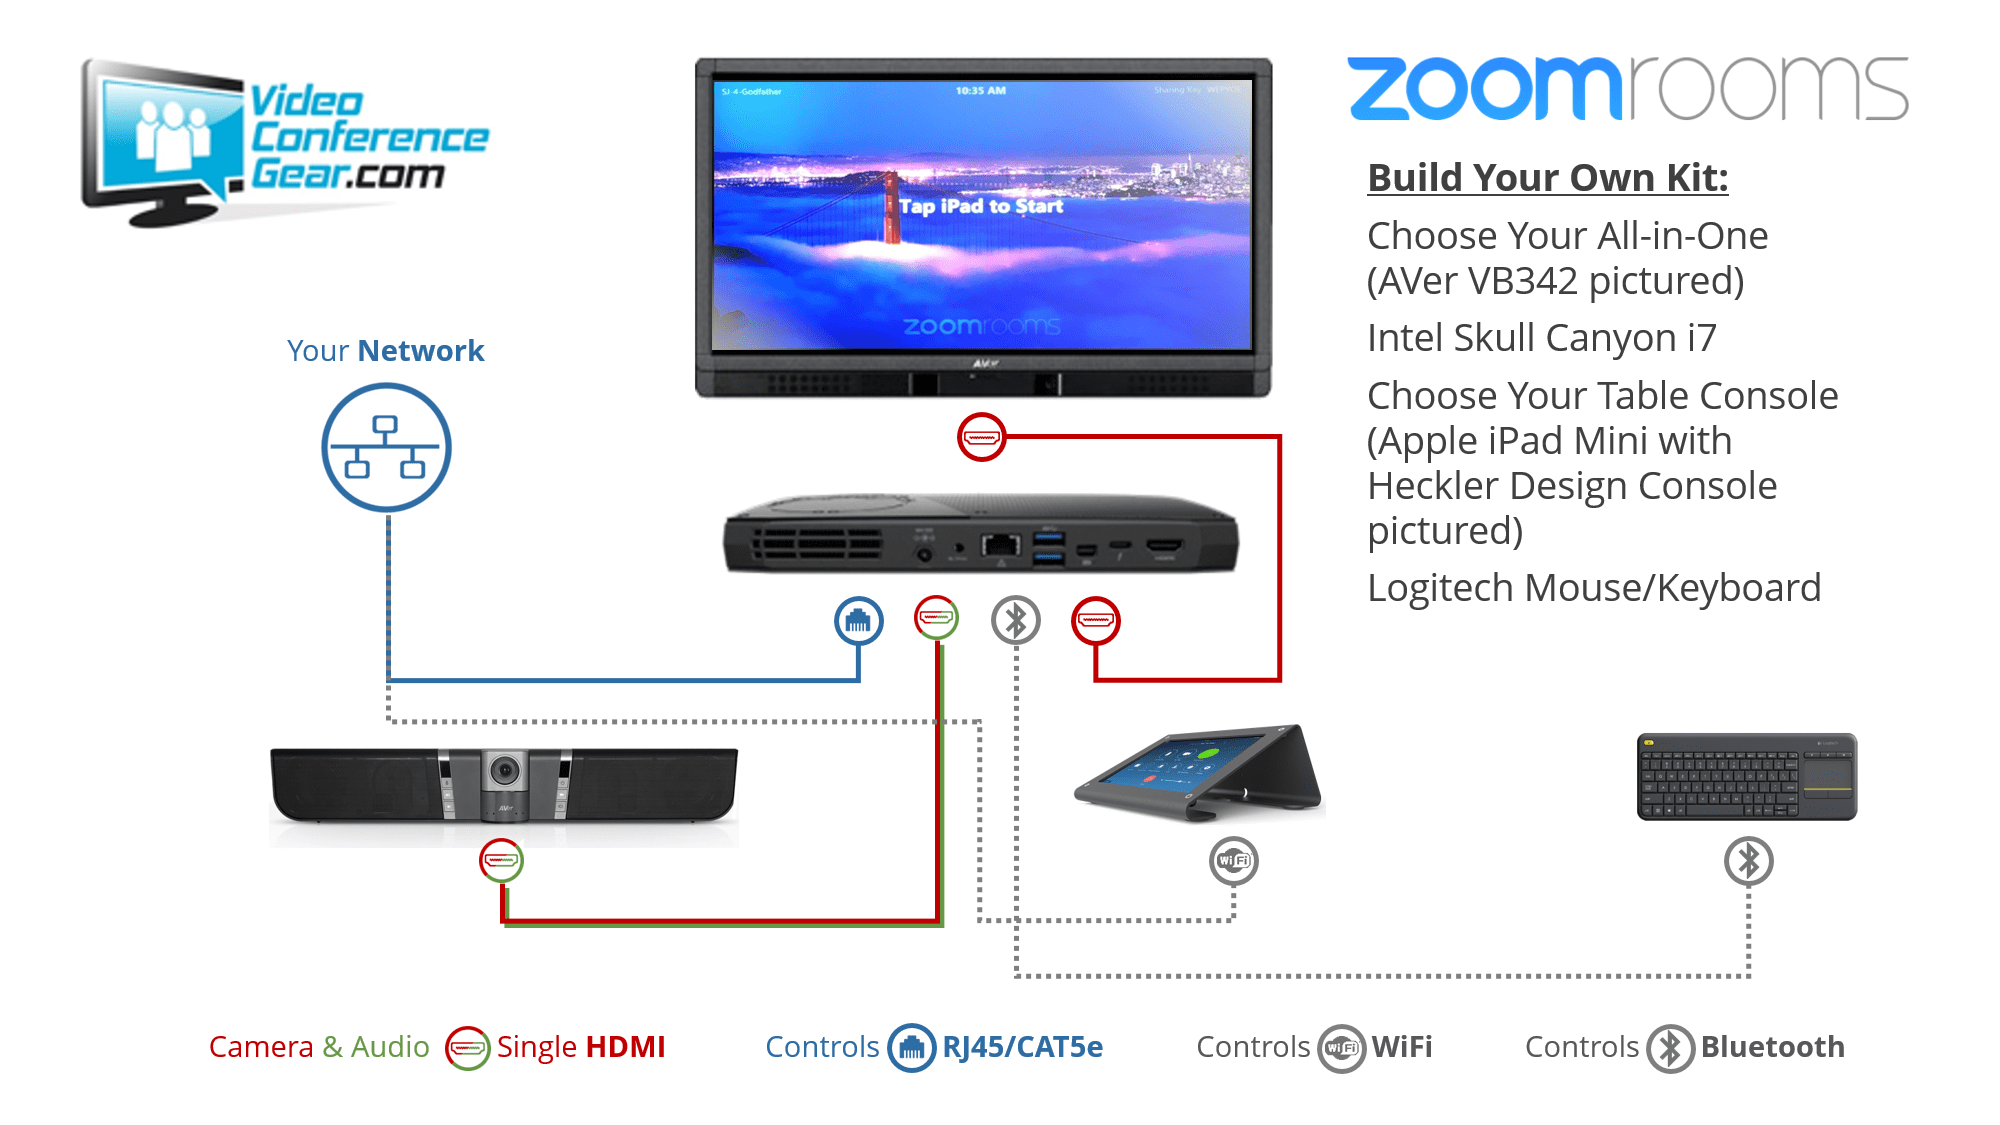 Zoom Rooms Kit All-in-One Options from VCG